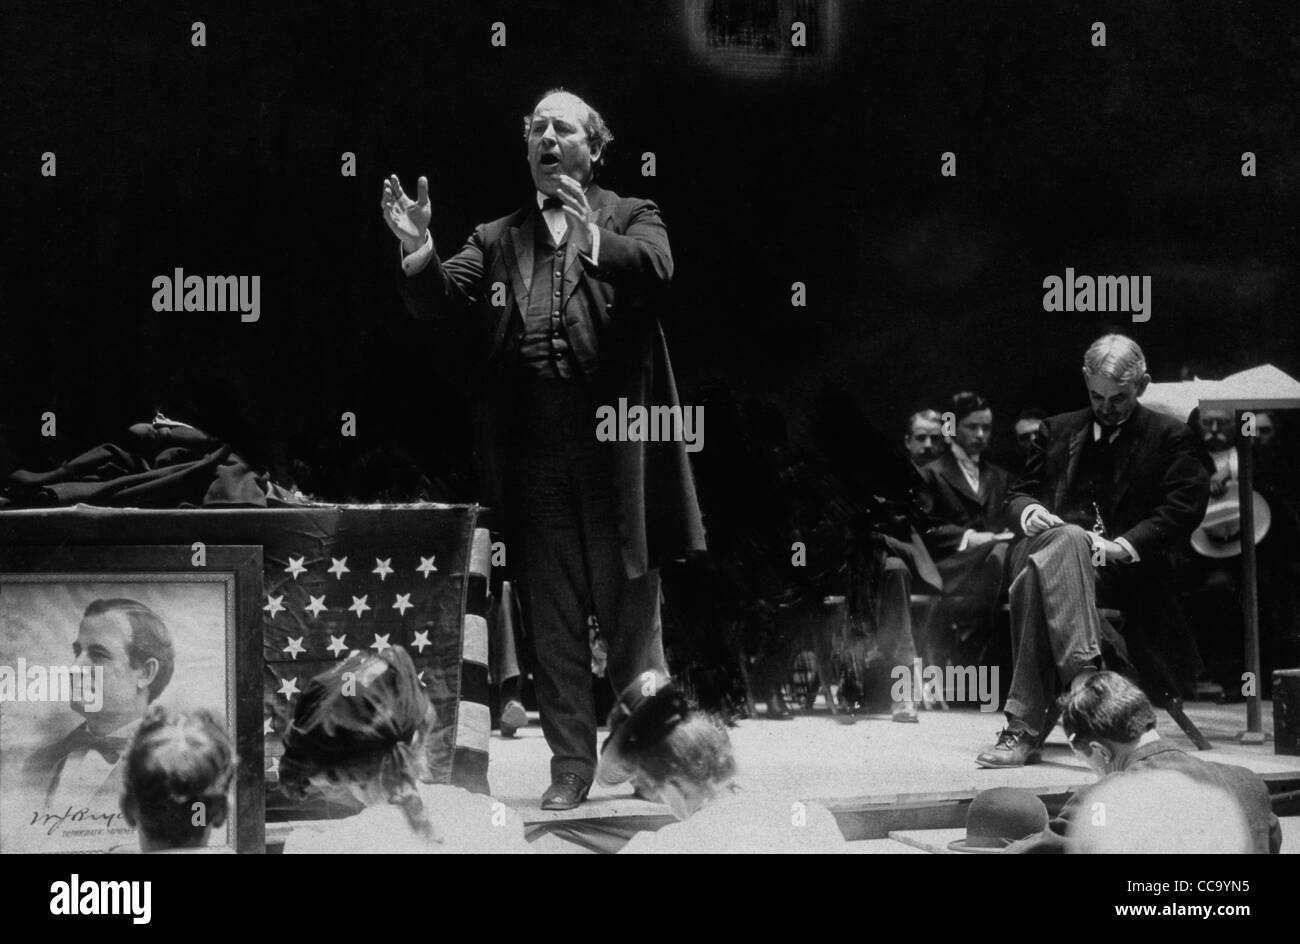 William Jennings Bryan standing next to flag draped table on stage during 1908 Democratic National Convention - Stock Image